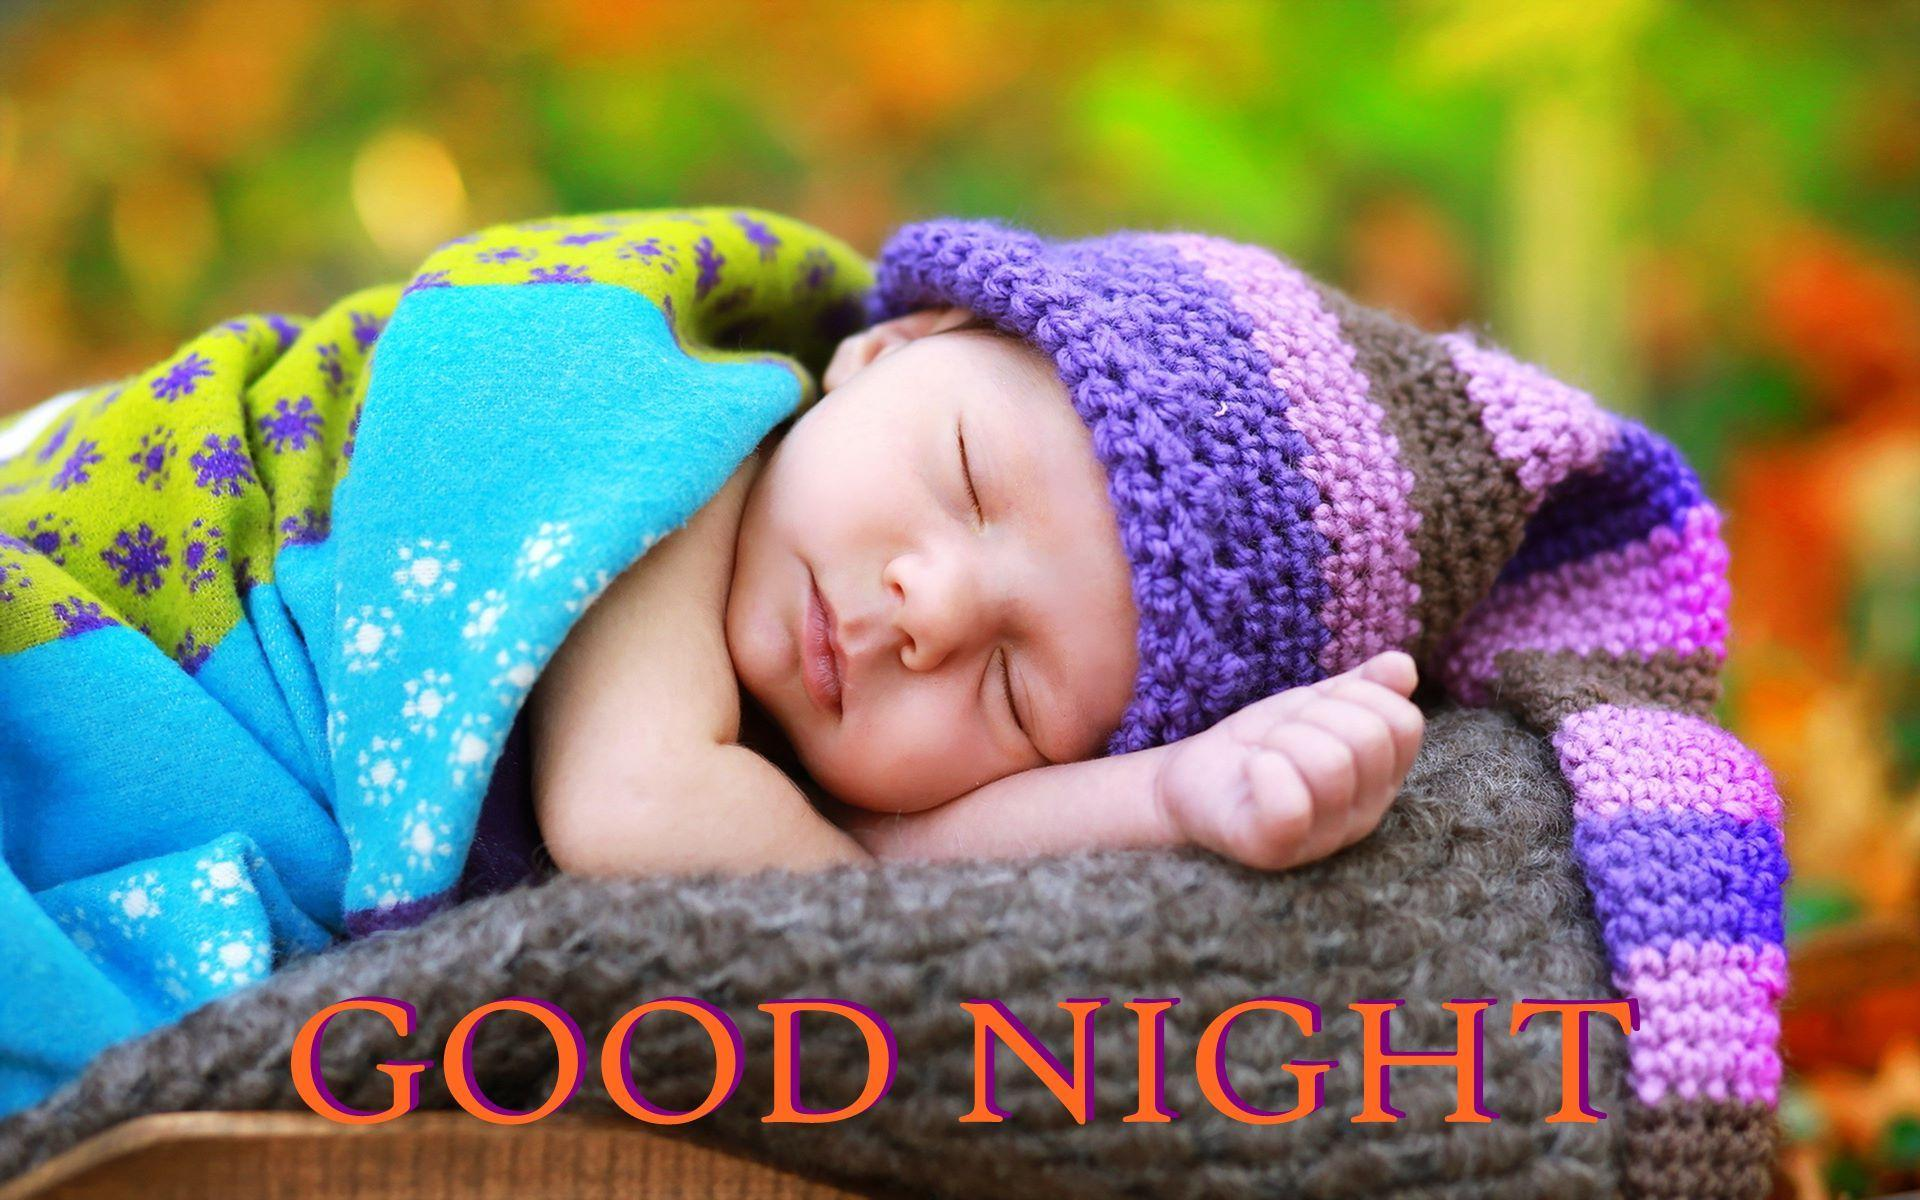 Good Night Baby Hd Wallpapers Wallpaper Cave